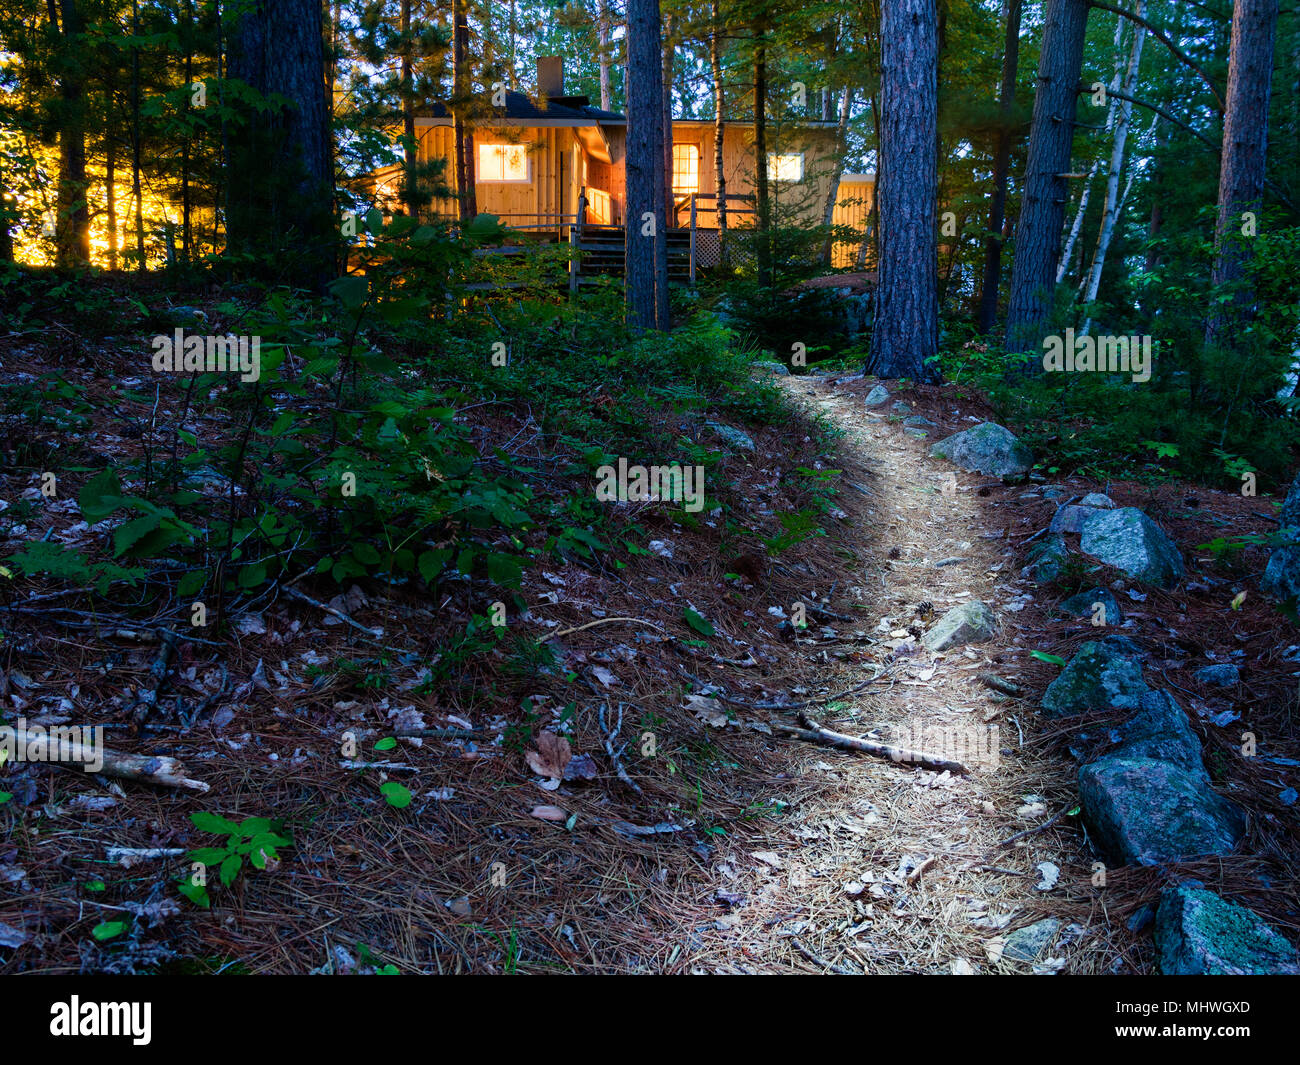 Ontario, Canada; cottage in the woods with illuminated path - Stock Image